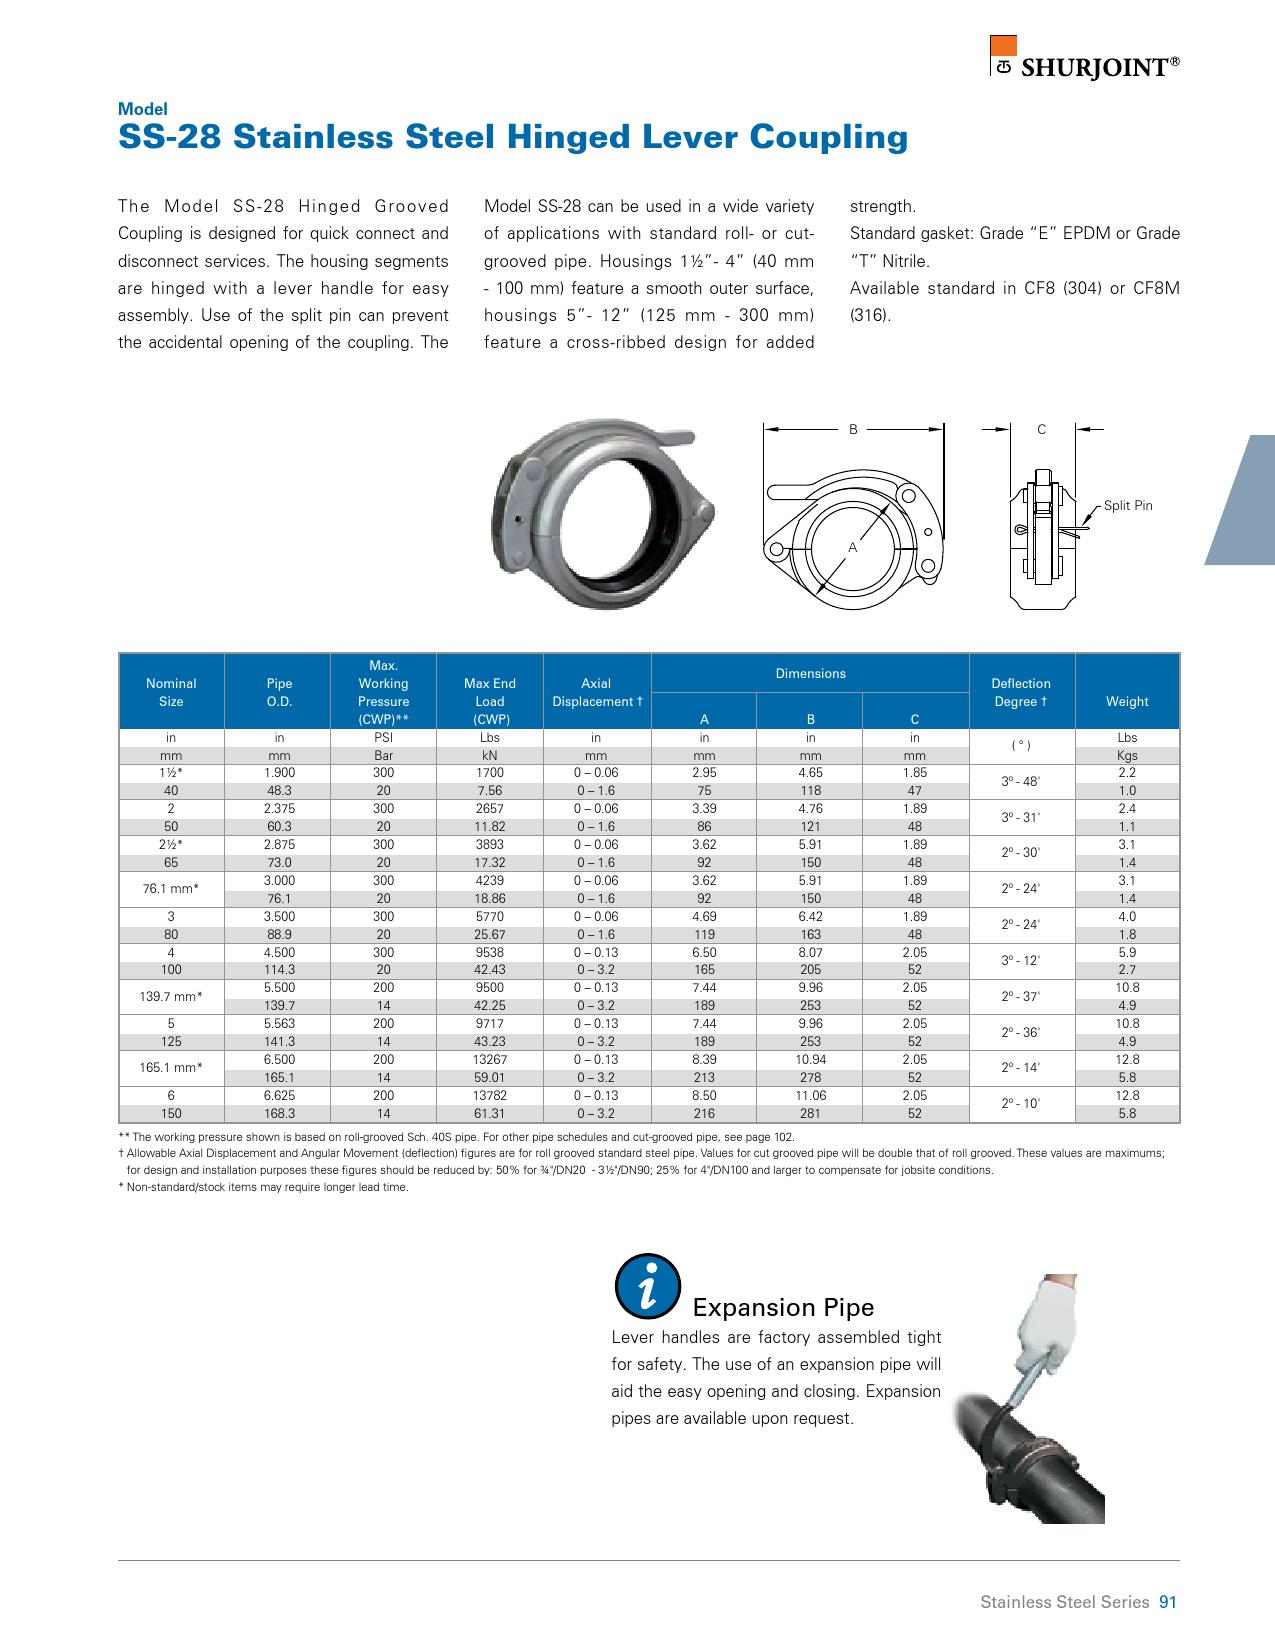 Stainless Steel Series, Grooved Mechanical Couplings